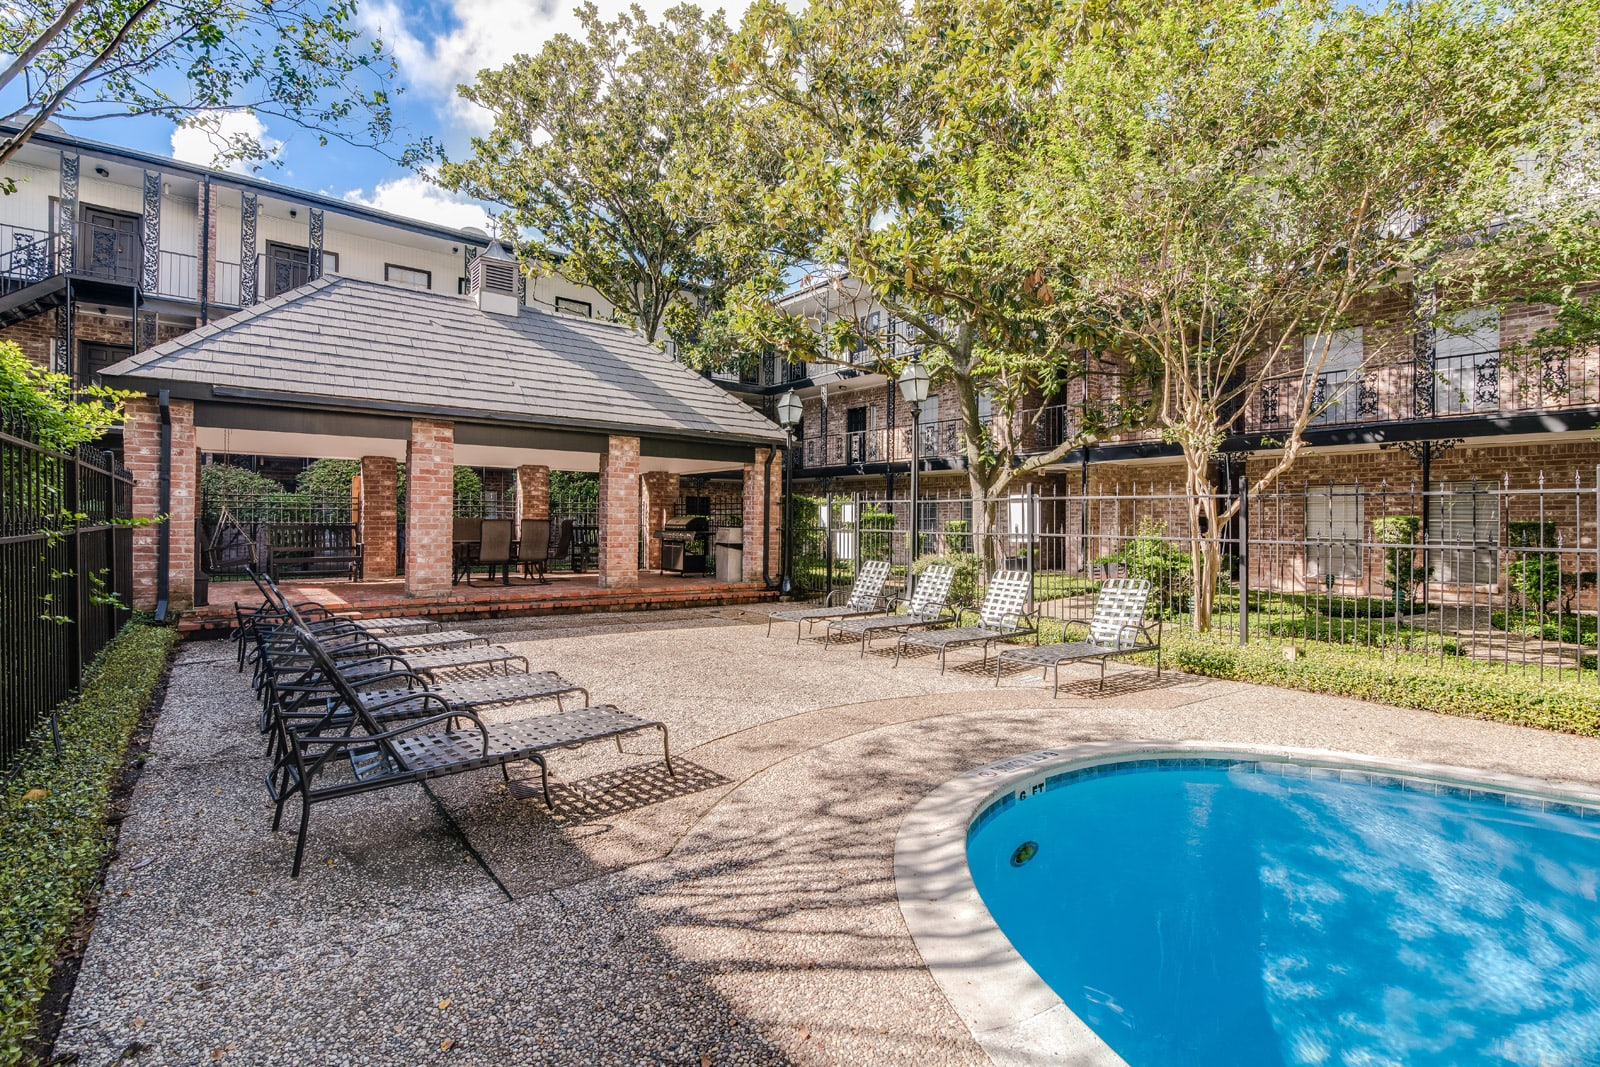 Barbecue Area and Sundeck by Pool at Allen House Apartments, Houston, TX